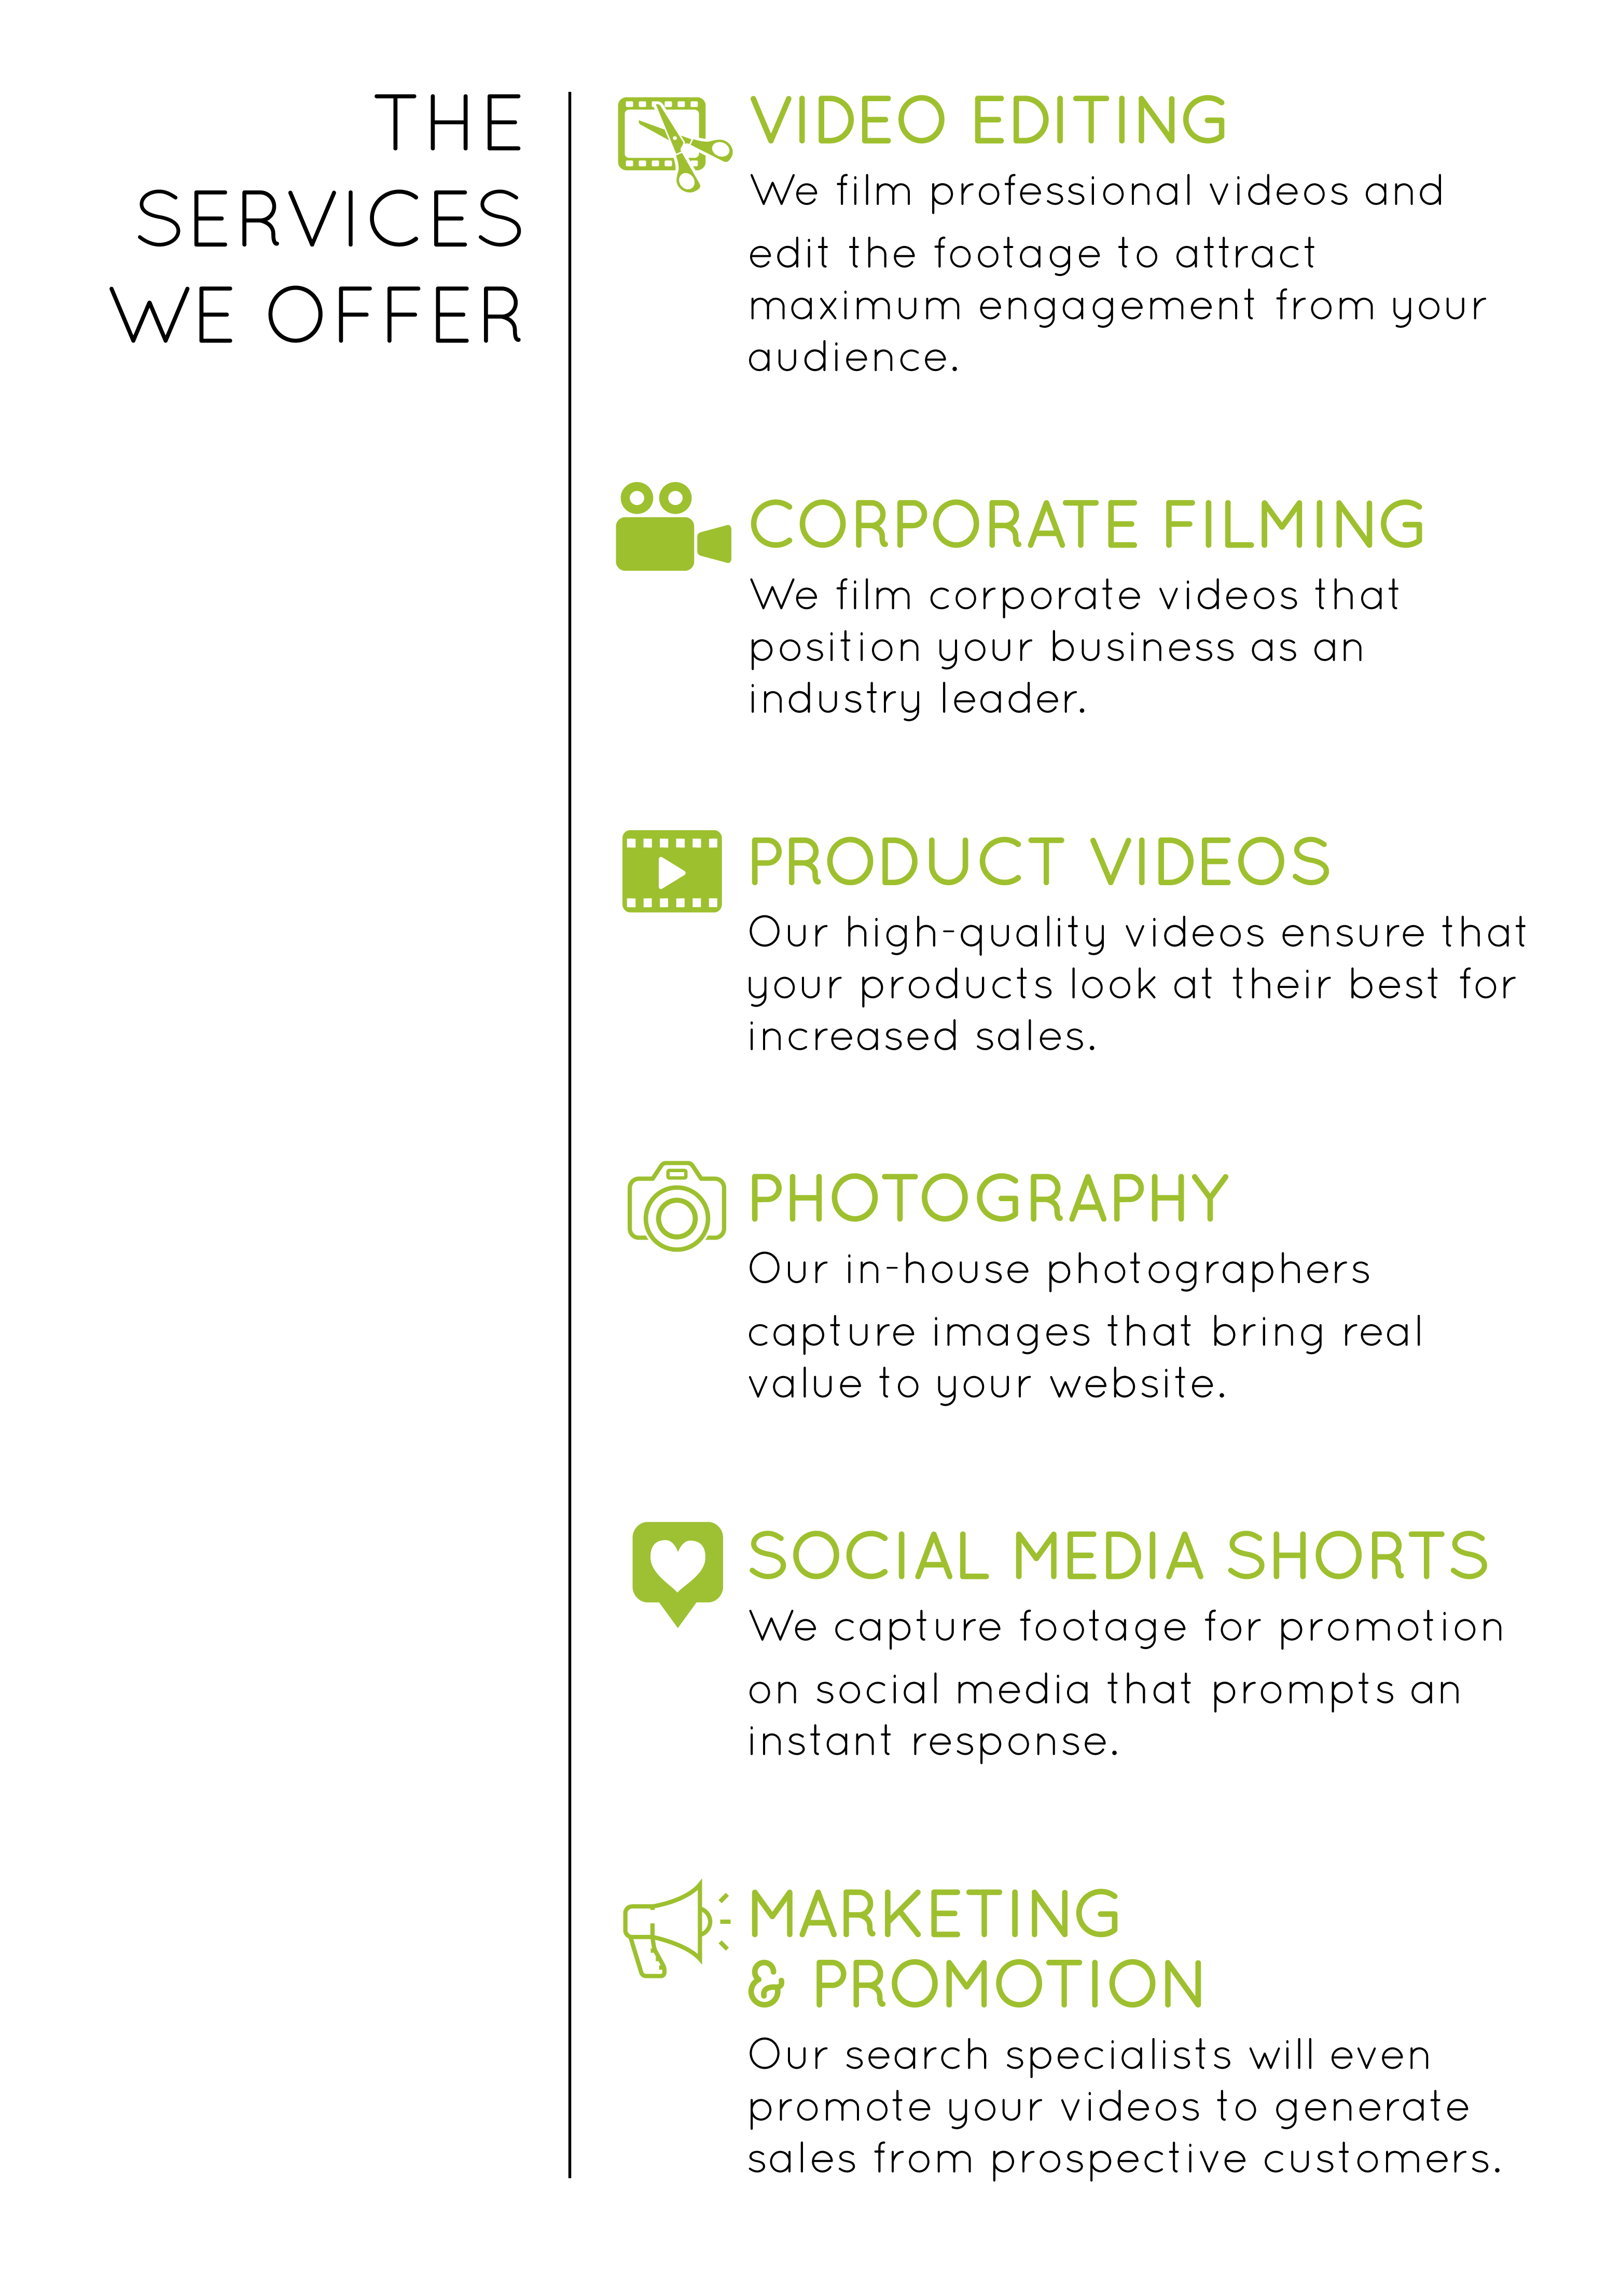 Video production services banner.